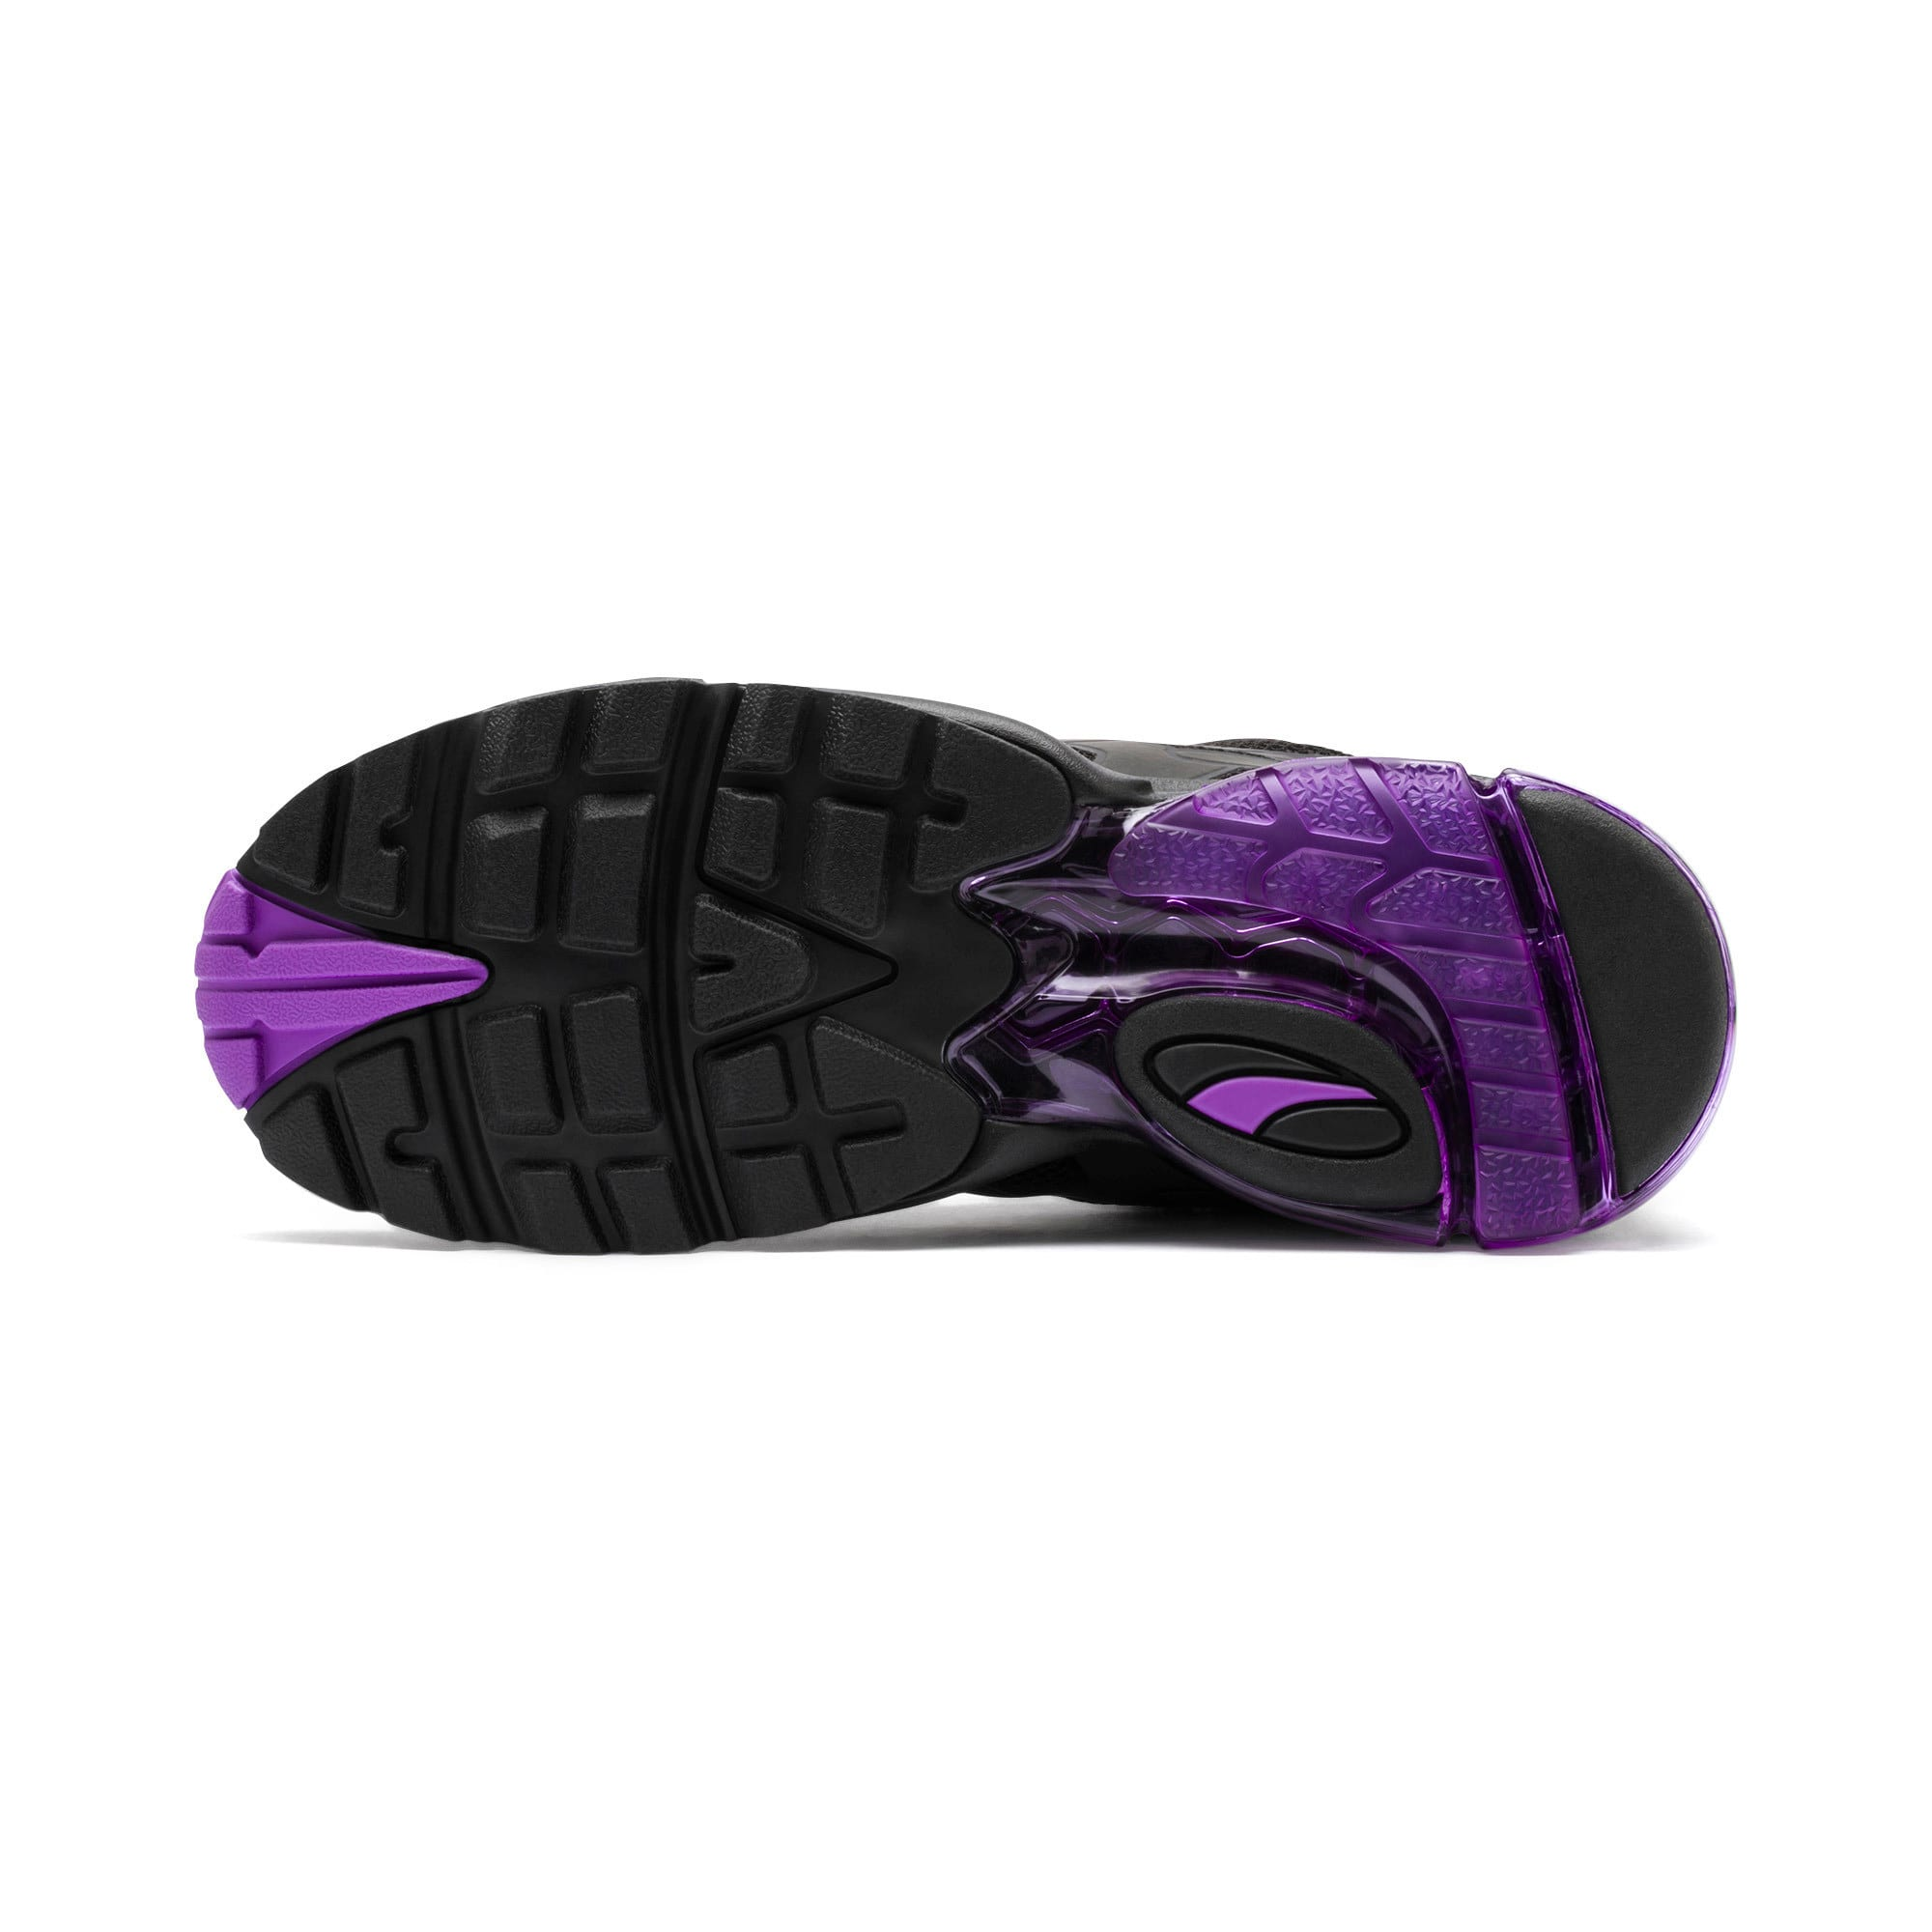 Thumbnail 5 of CELL Alien Kotto sportschoenen, Puma Black-Puma Black, medium